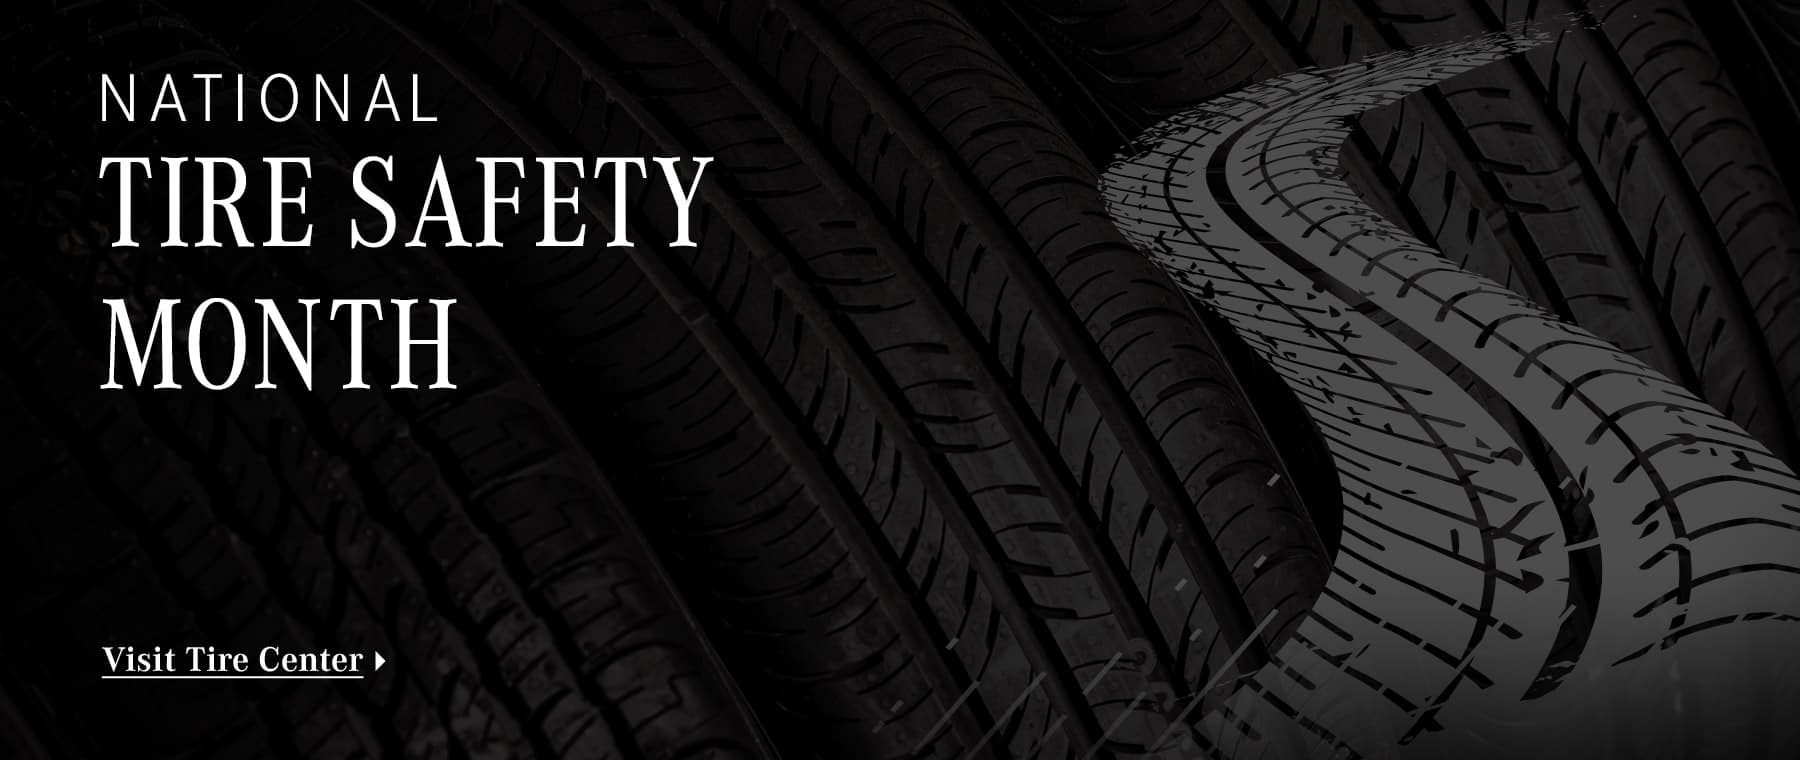 Homepage-Slider-MBH-National-Tire-Safety-Month